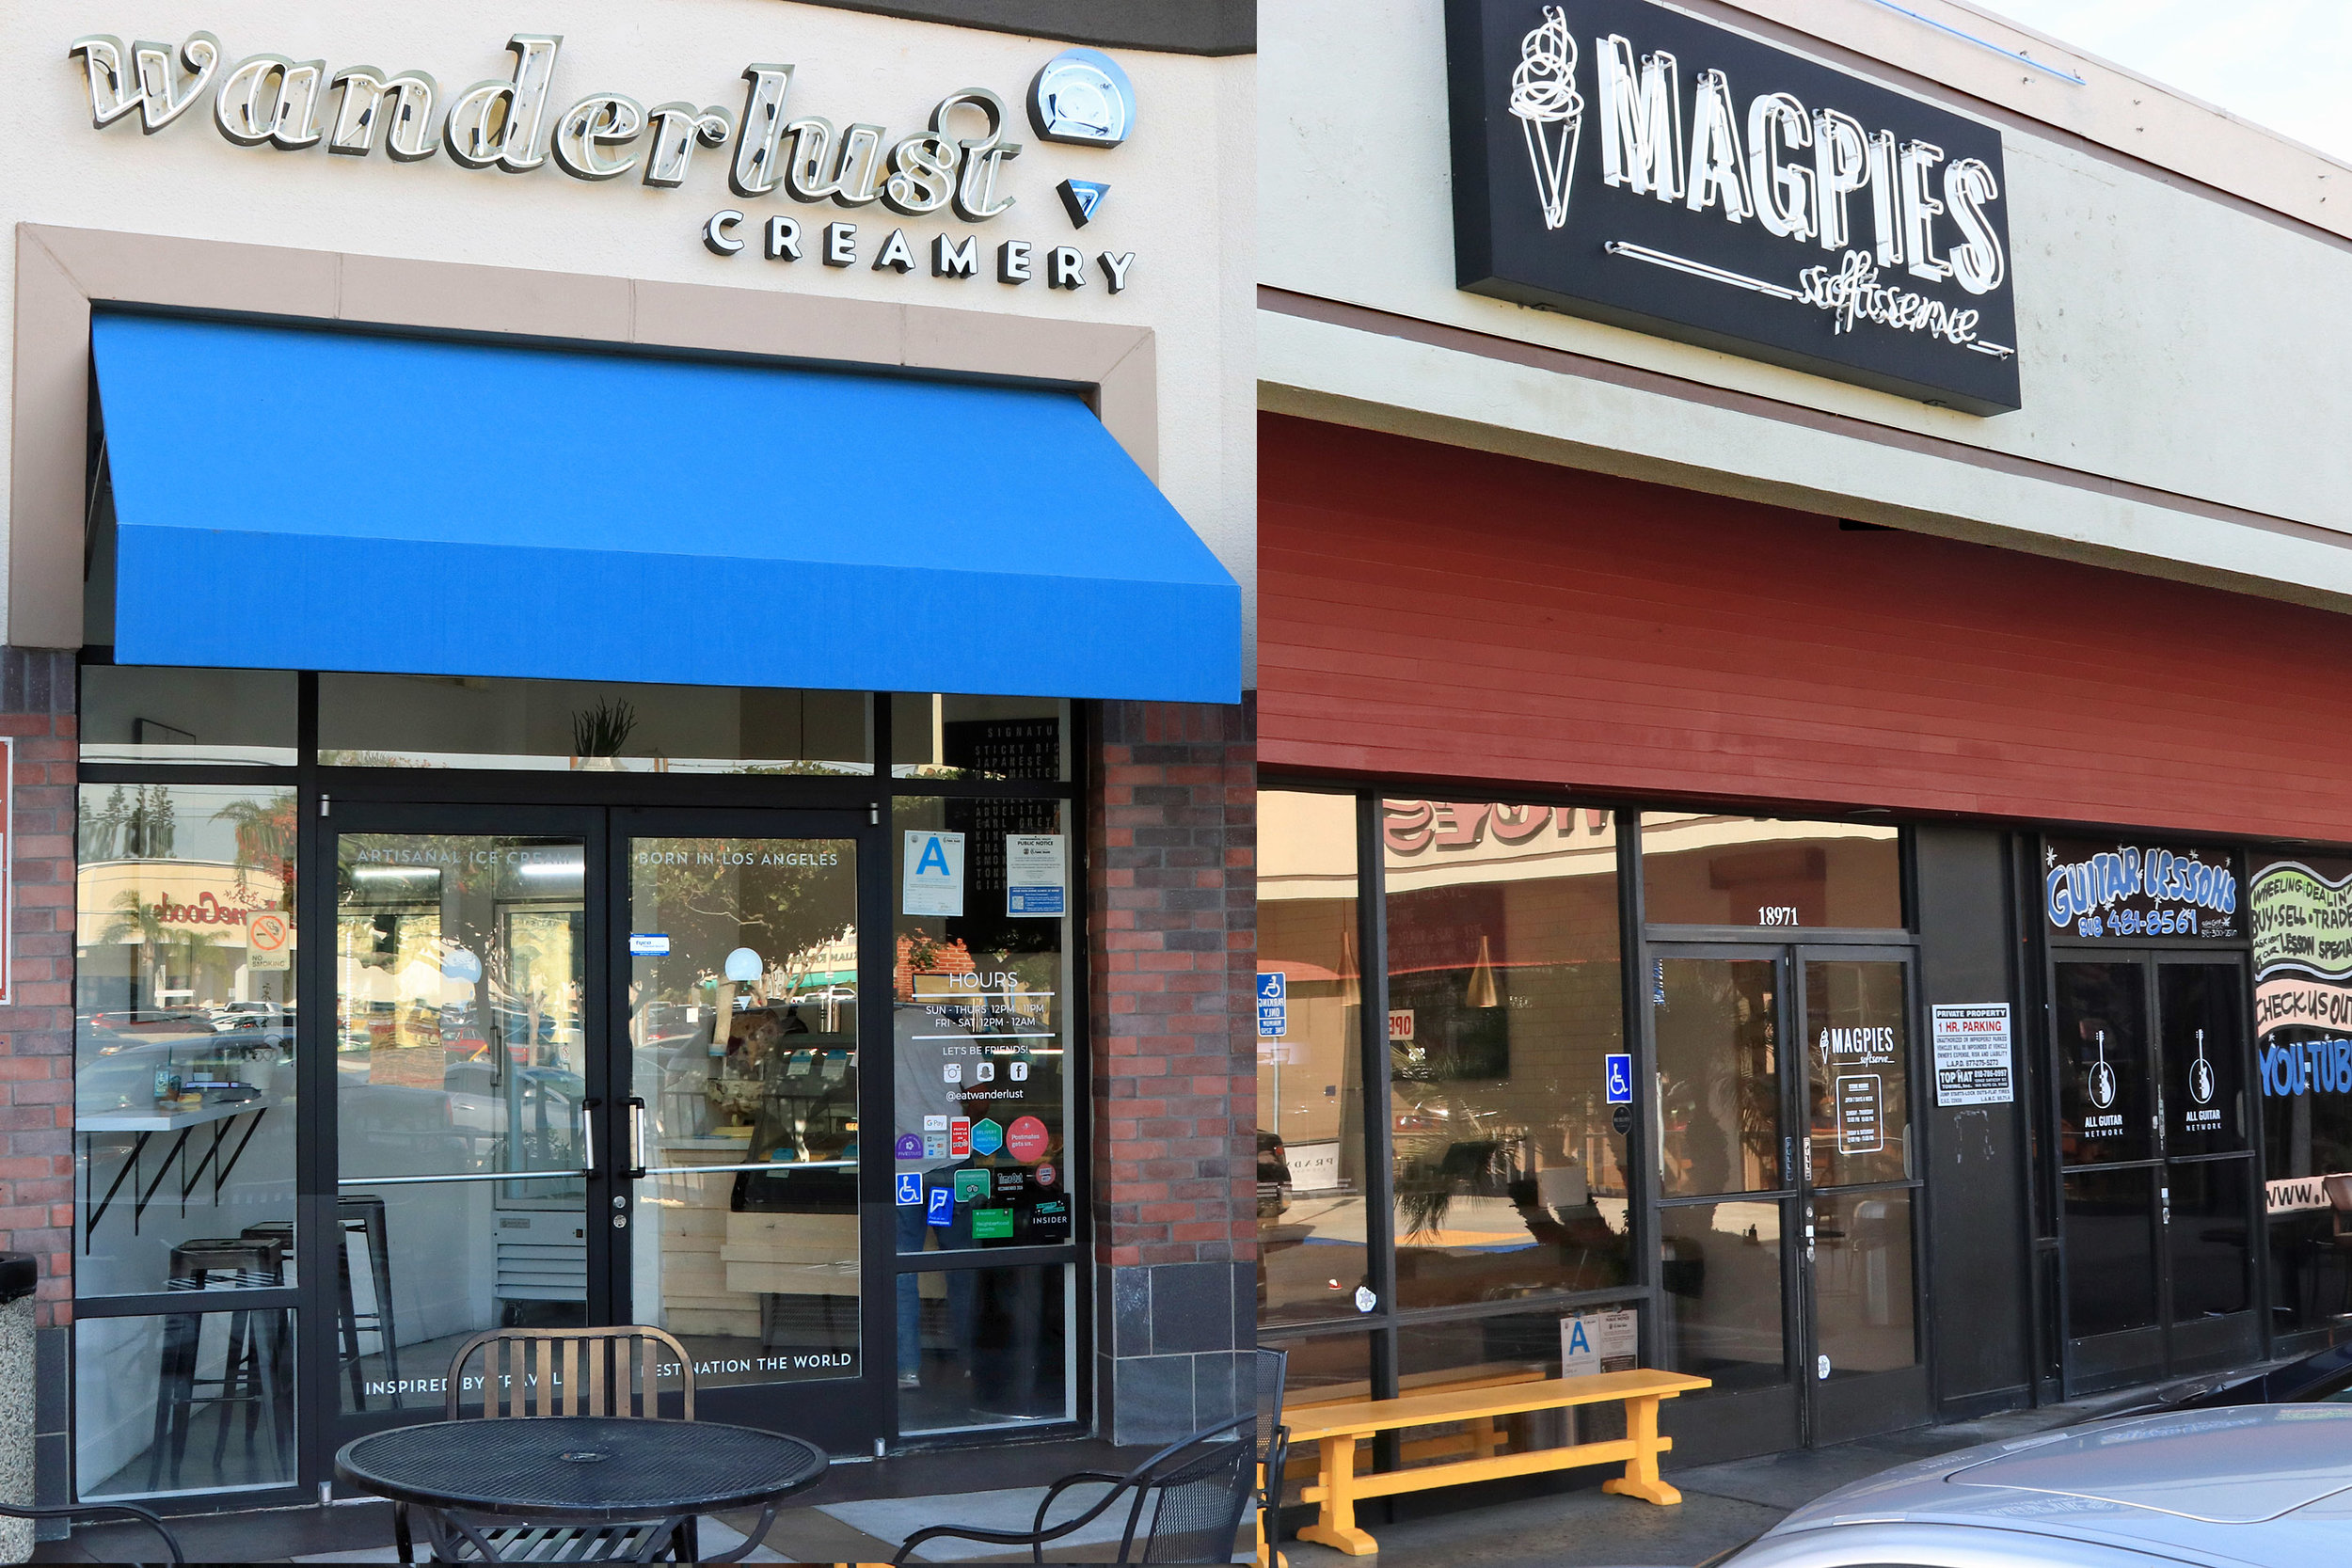 Wanderlust Creamery and Magpie's Softserve